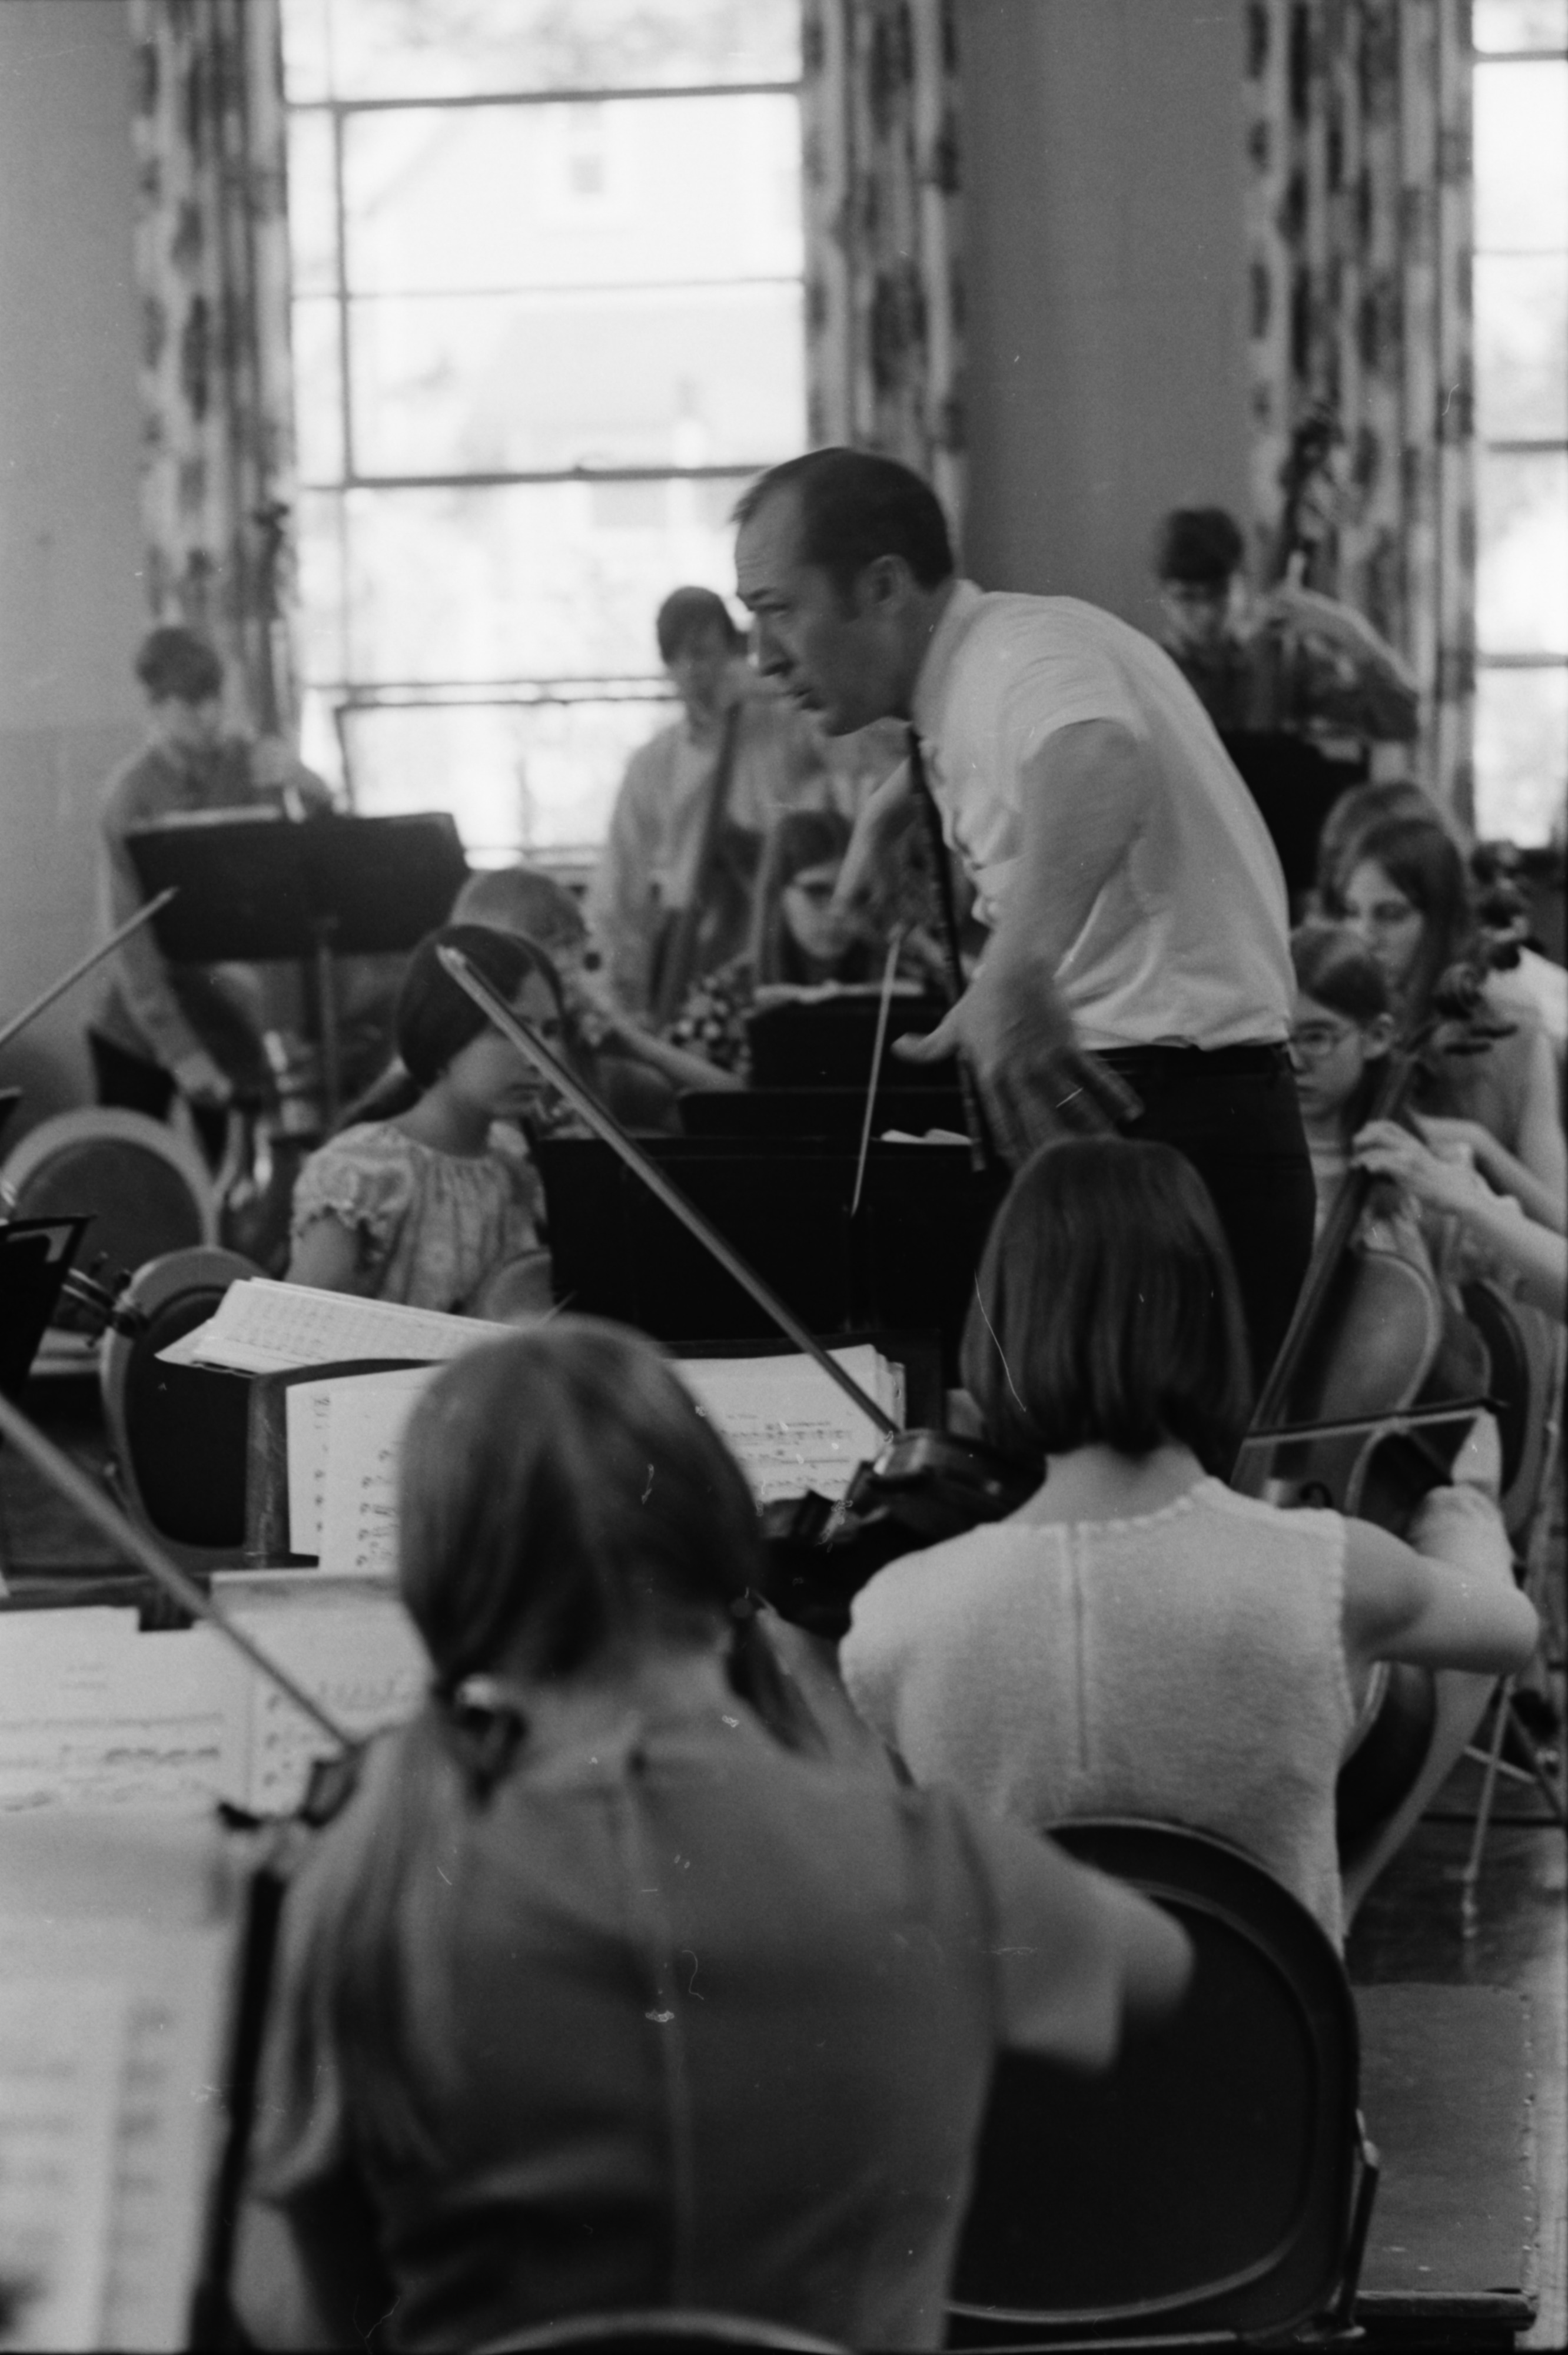 Charles Gabrion conducts a rehearsal for Ann Arbor Public Schools' annual Spring Music Festival, April 1969 image